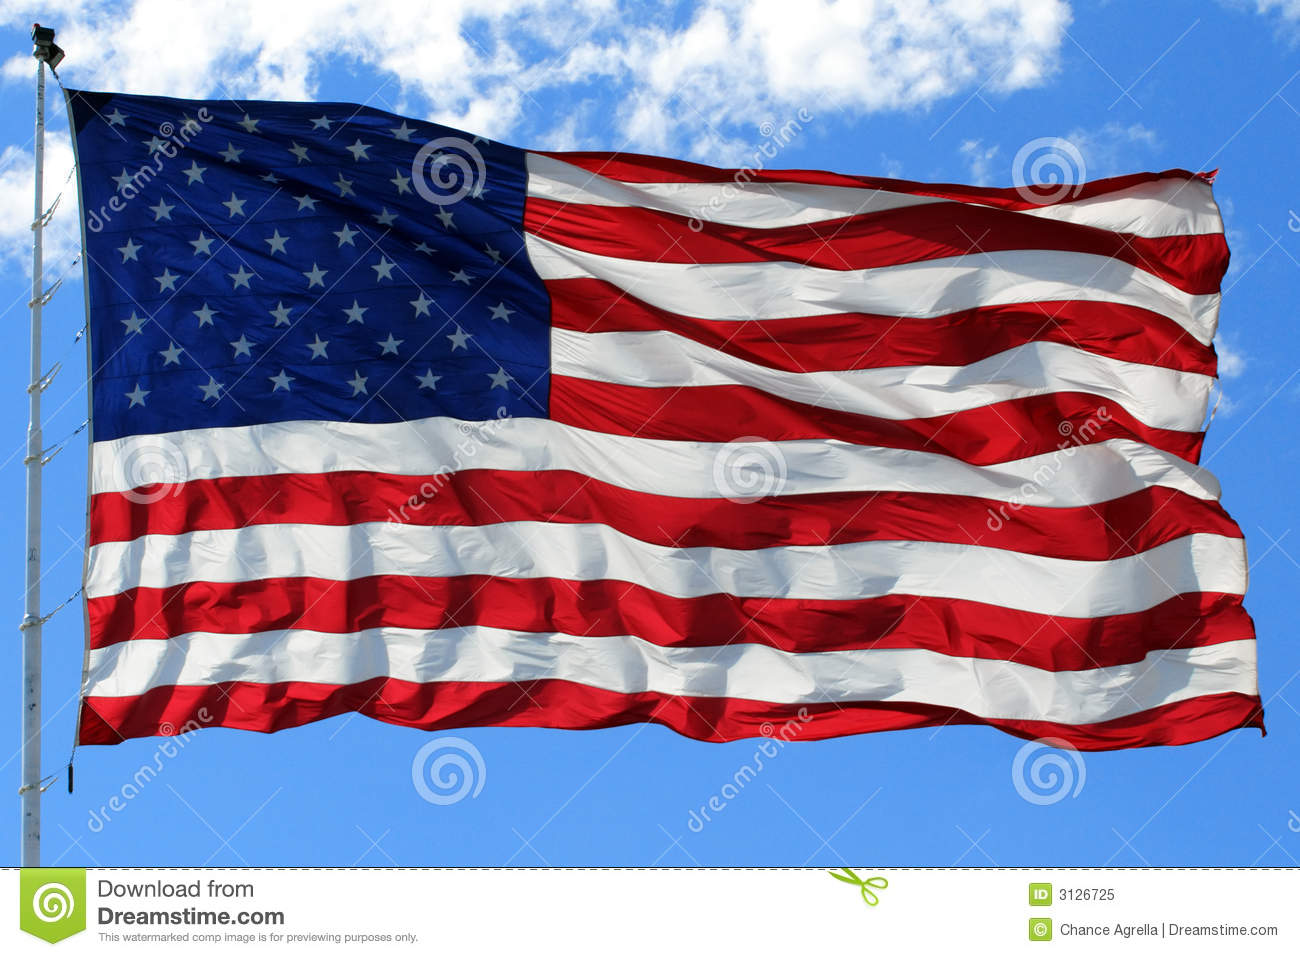 American Flag in Bright Blue